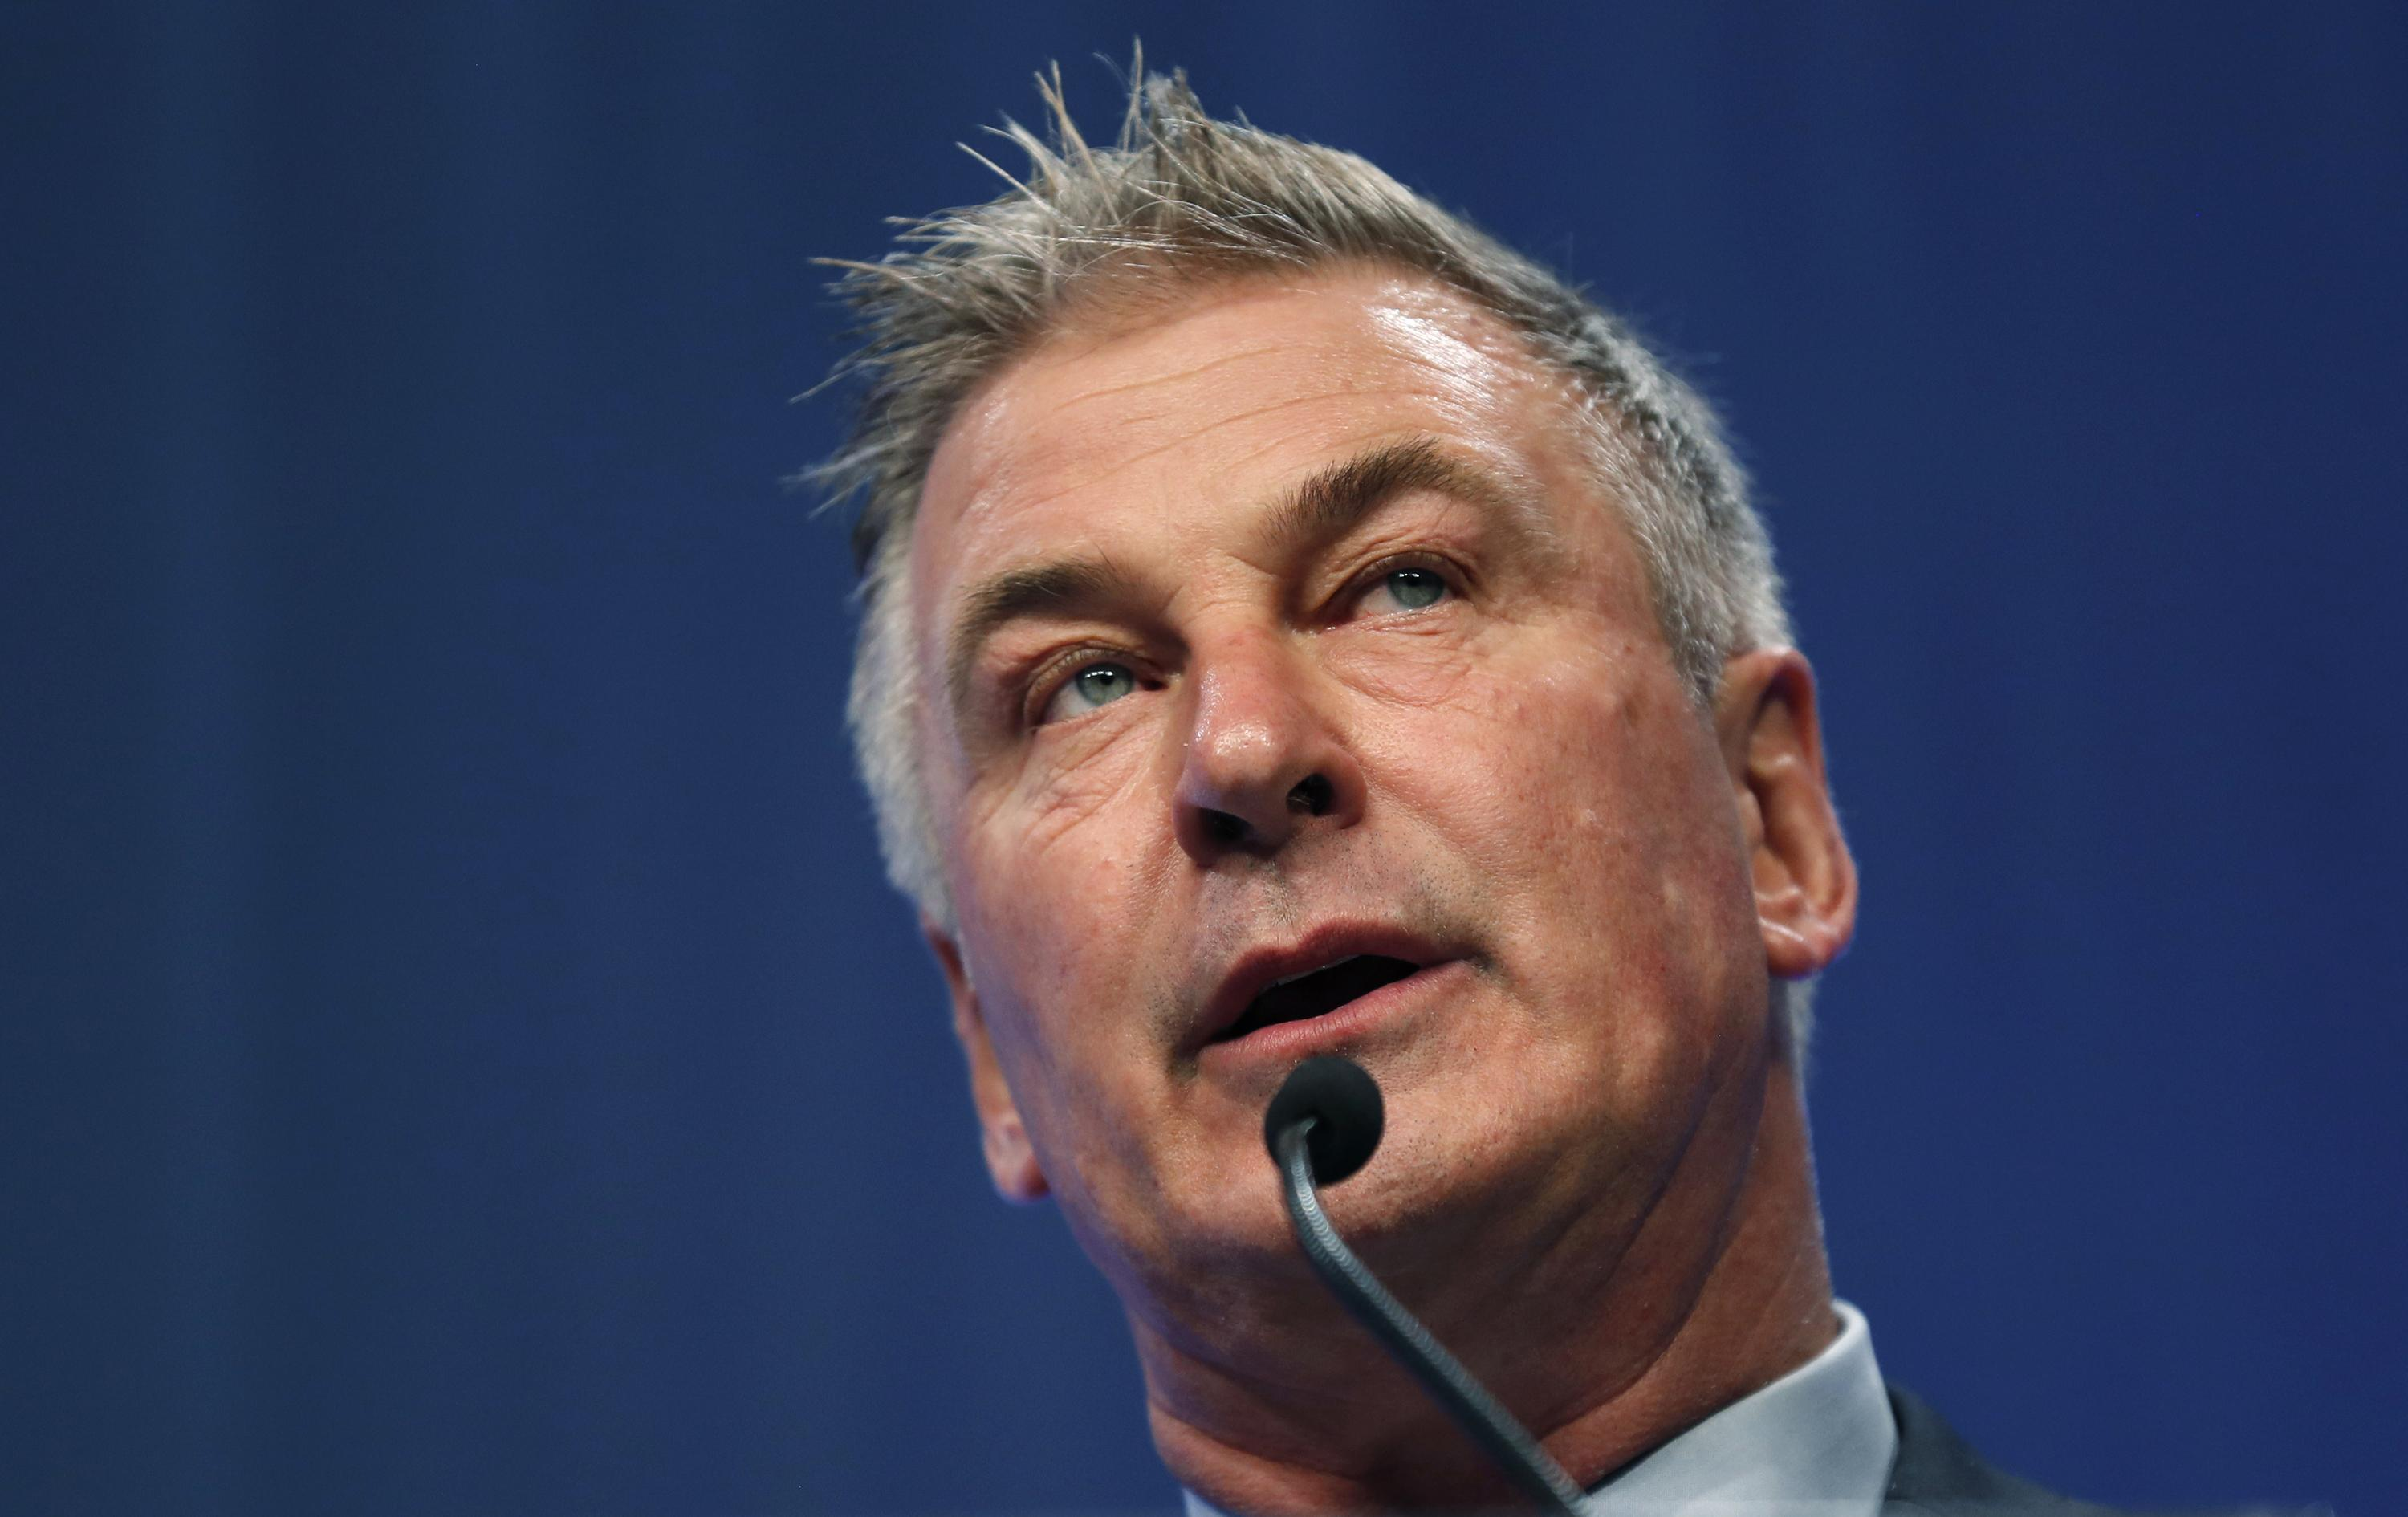 Alec Baldwin: Trump supporters swallow racist 'poison pills' because they worship money